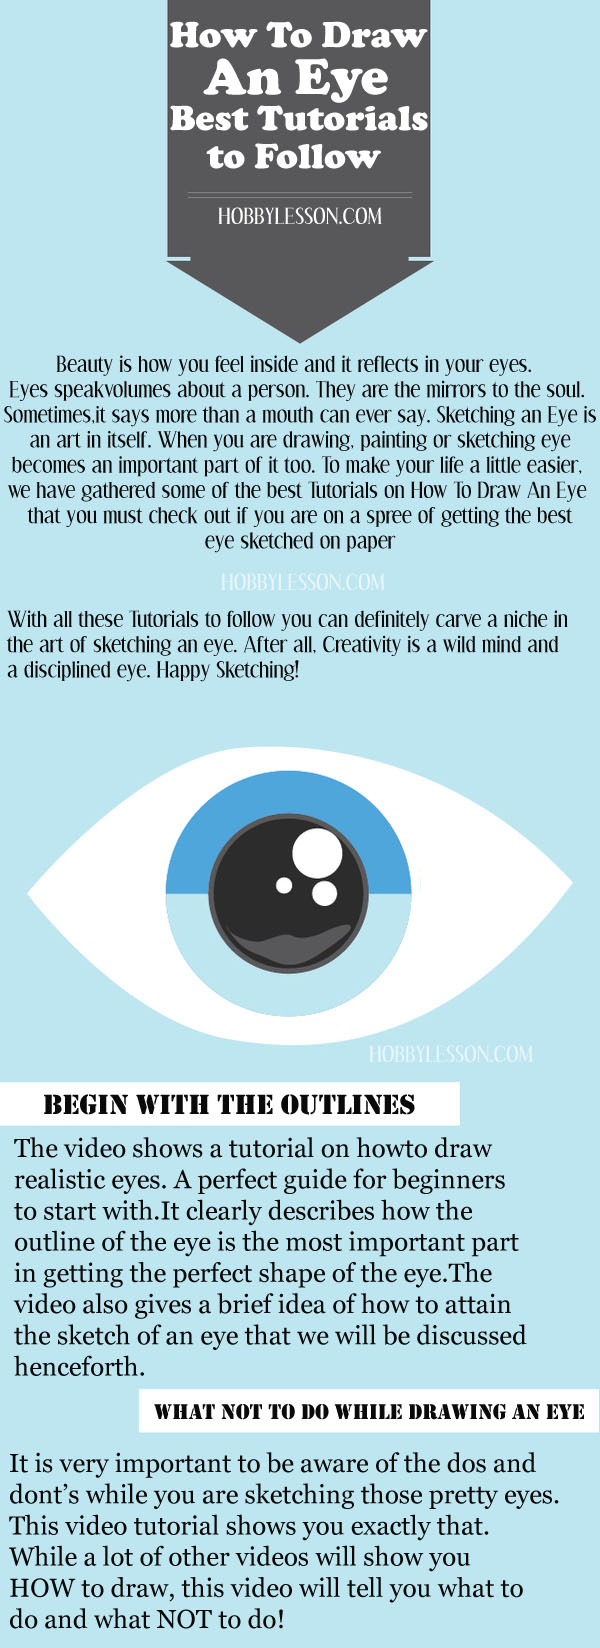 How-To-Draw-An-Eye-Best-Tutorials-to-Follow.